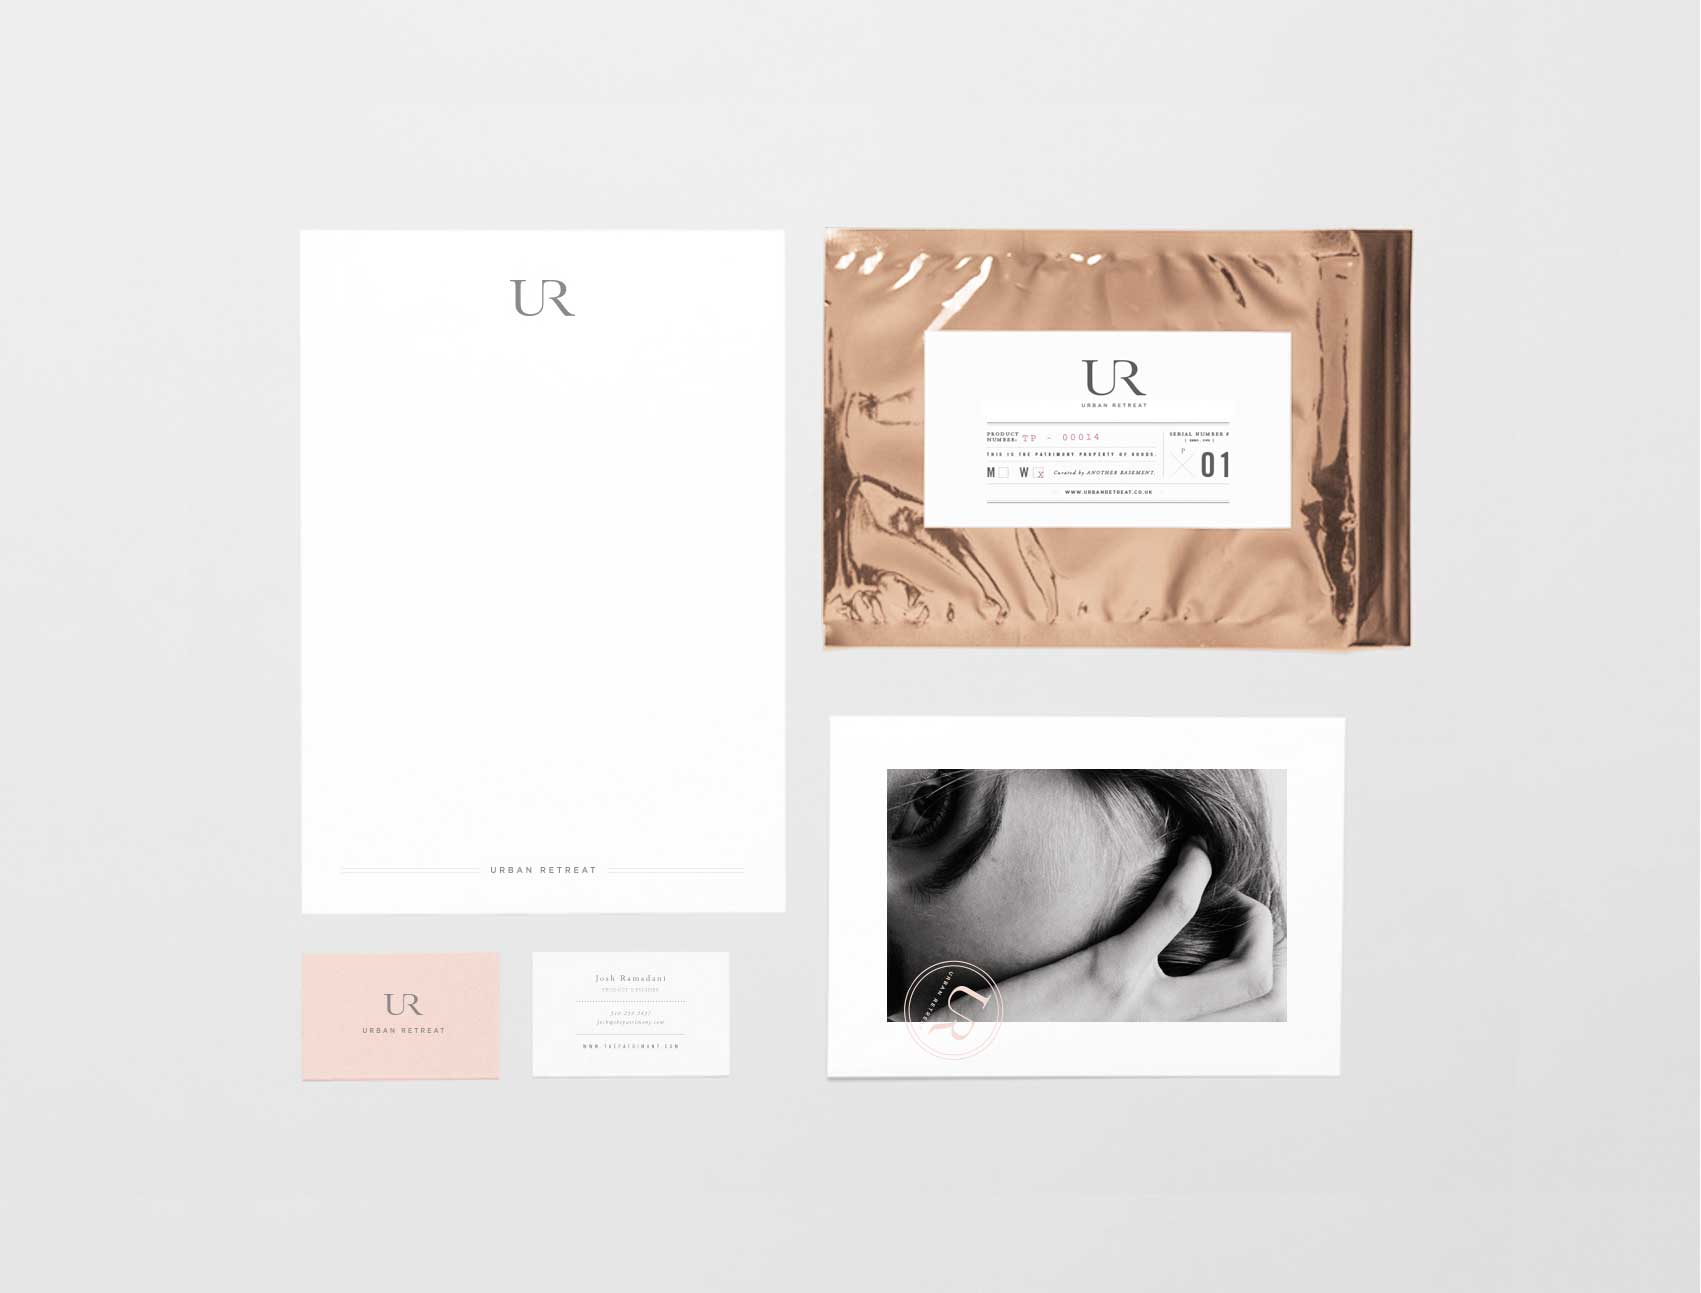 UR-stationery